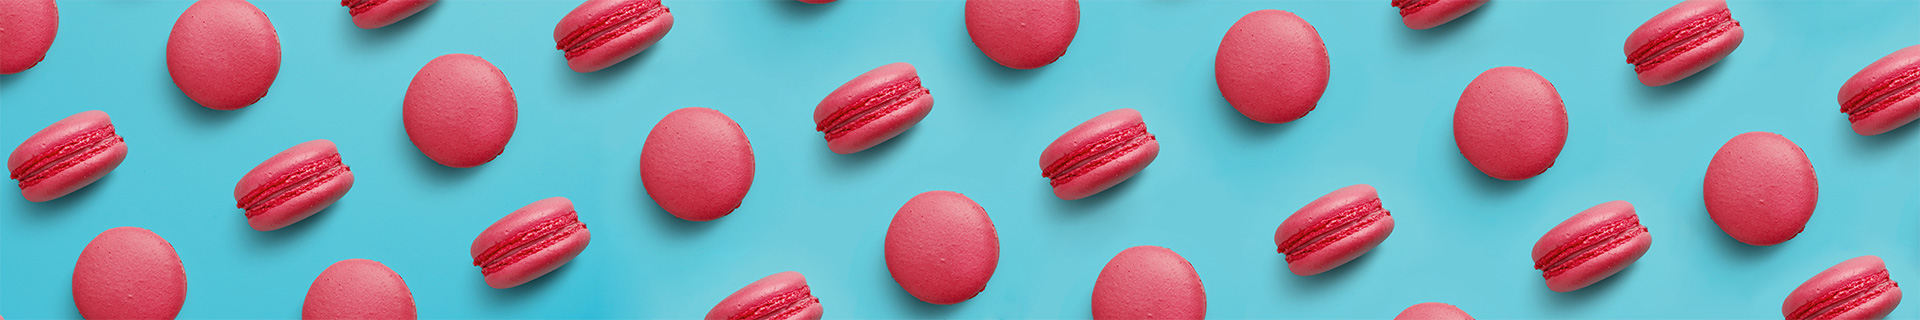 Red macarons against a blue background